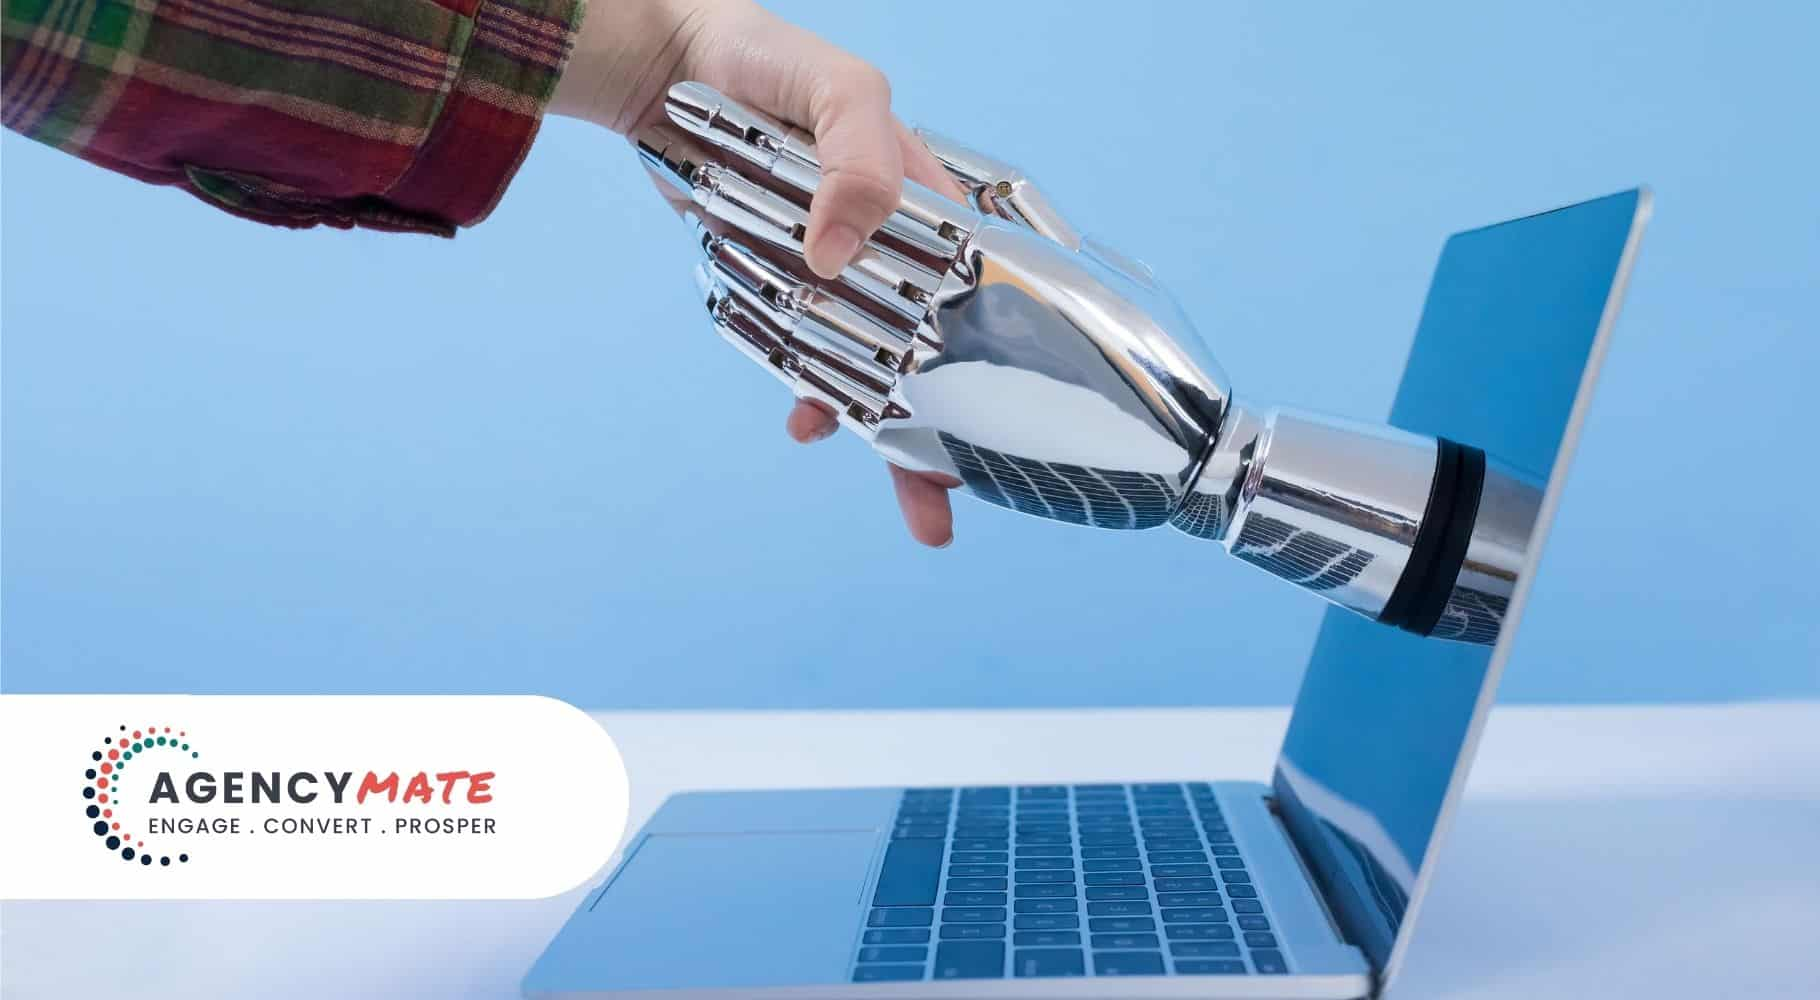 Bringing machine learning closer to humanity